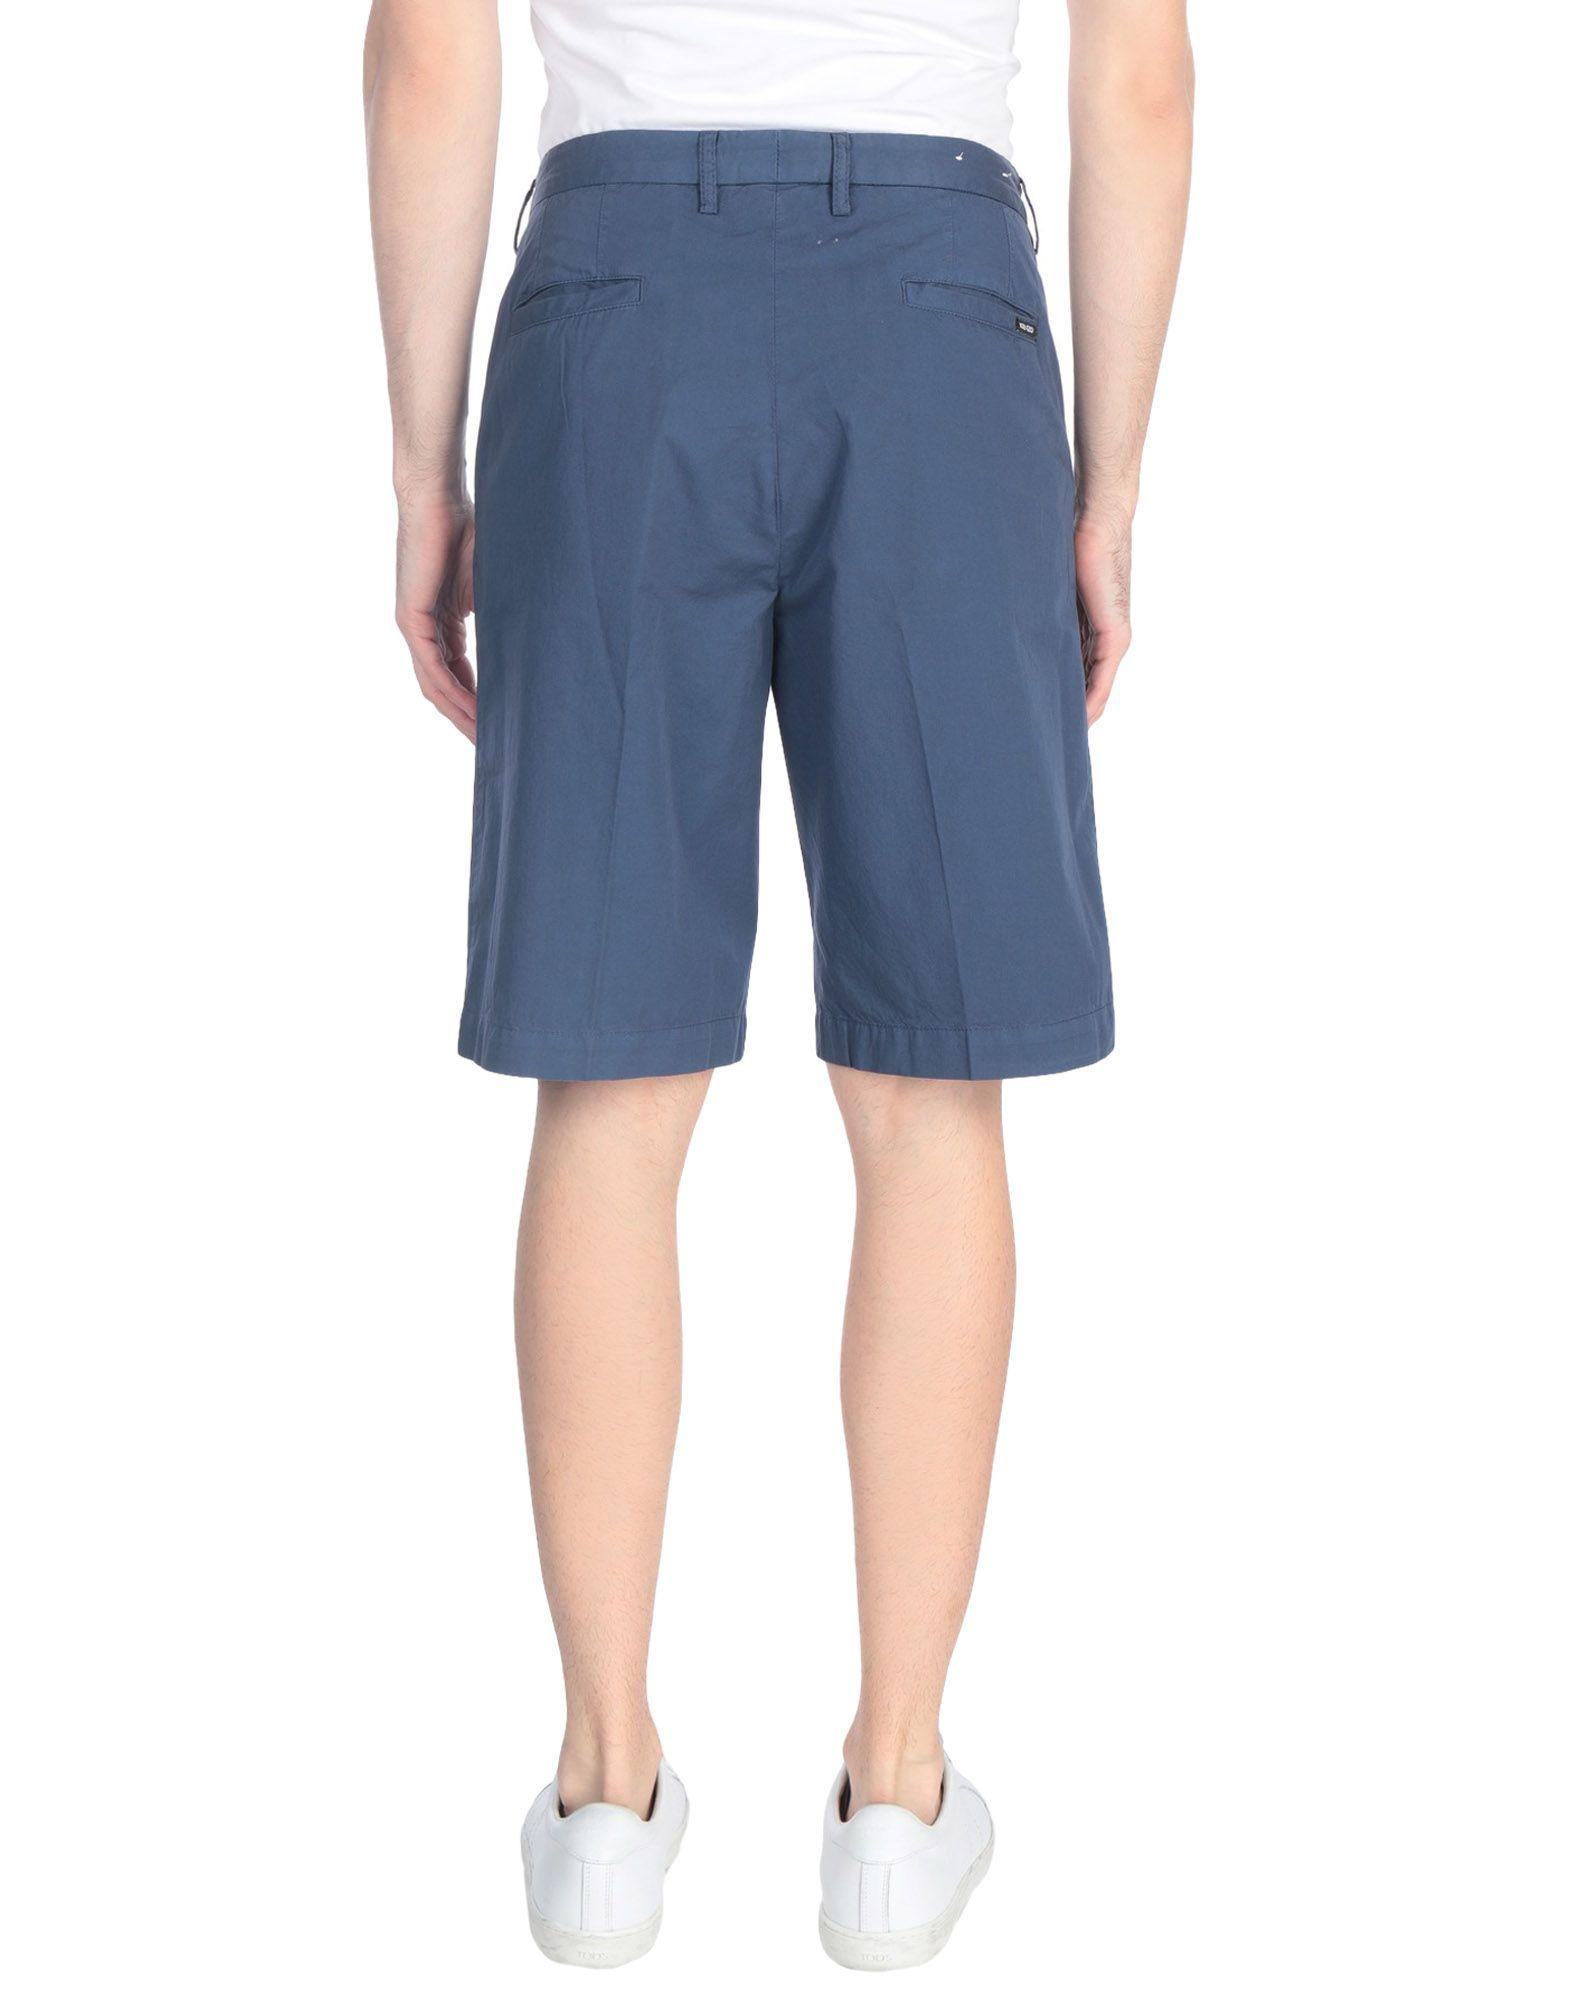 ffe283e167c1 KENZO Bermuda Shorts in Blue for Men - Lyst